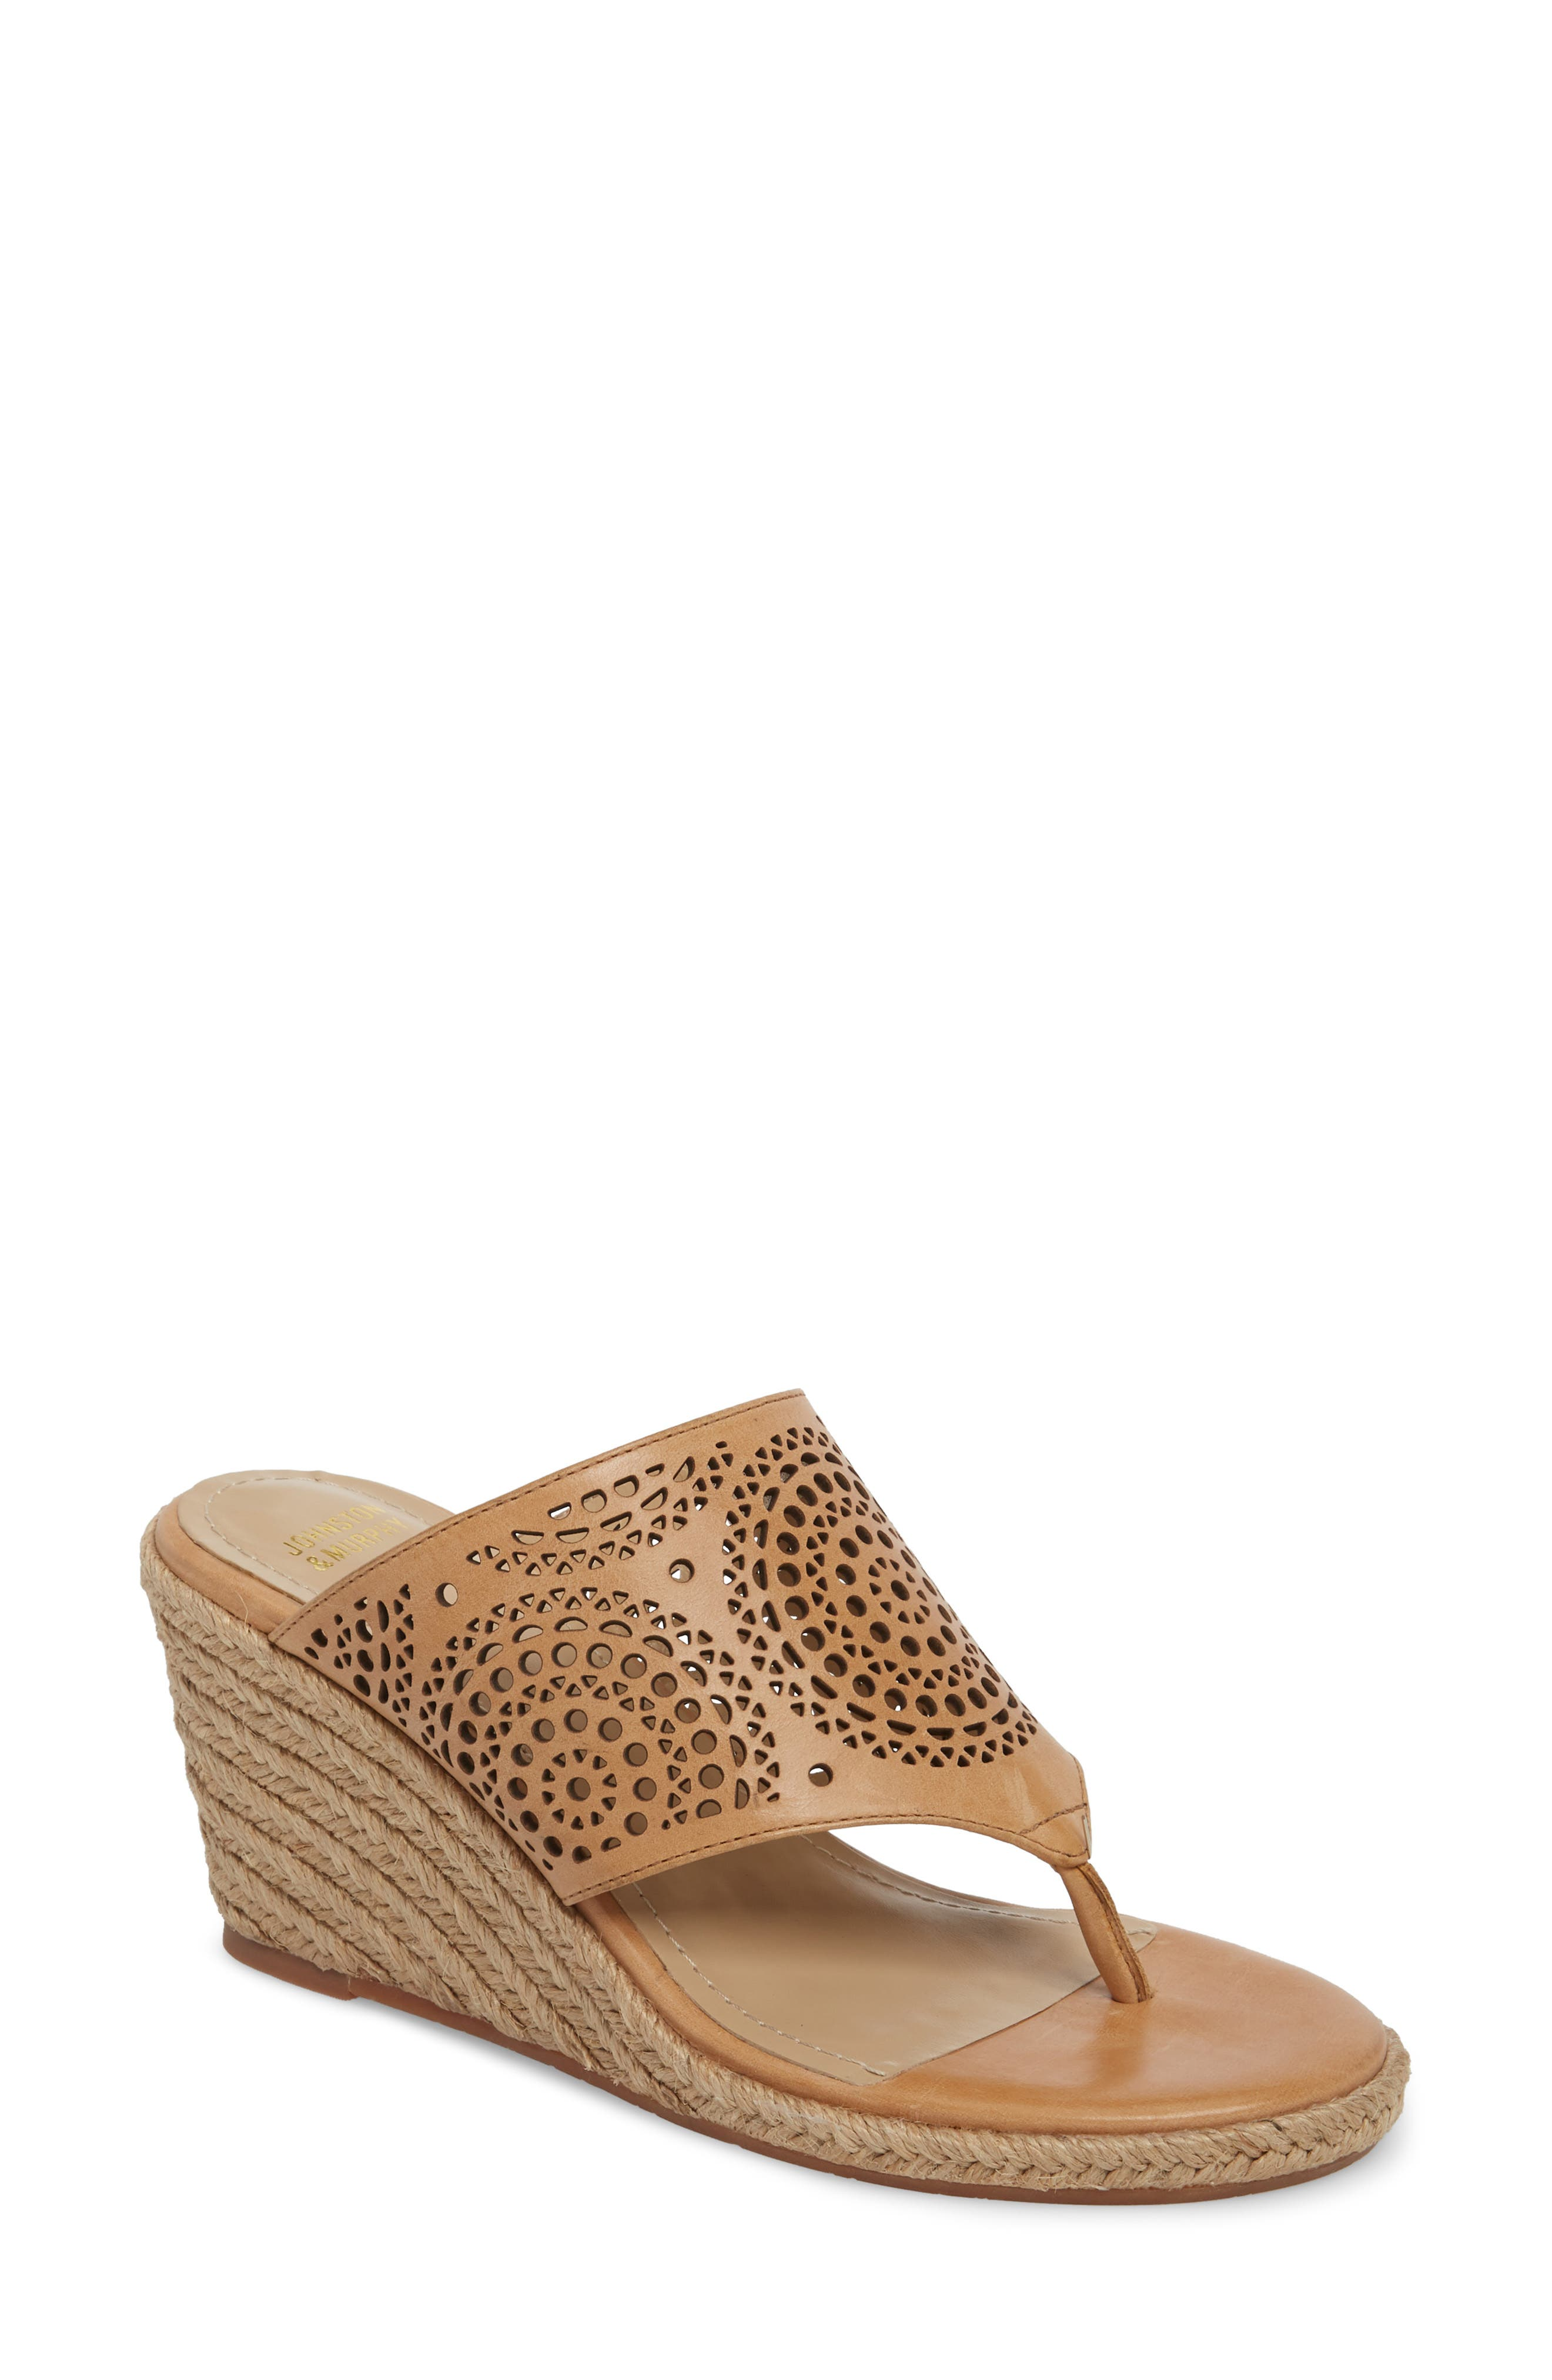 Gina Wedge Sandal,                         Main,                         color, Tan Leather